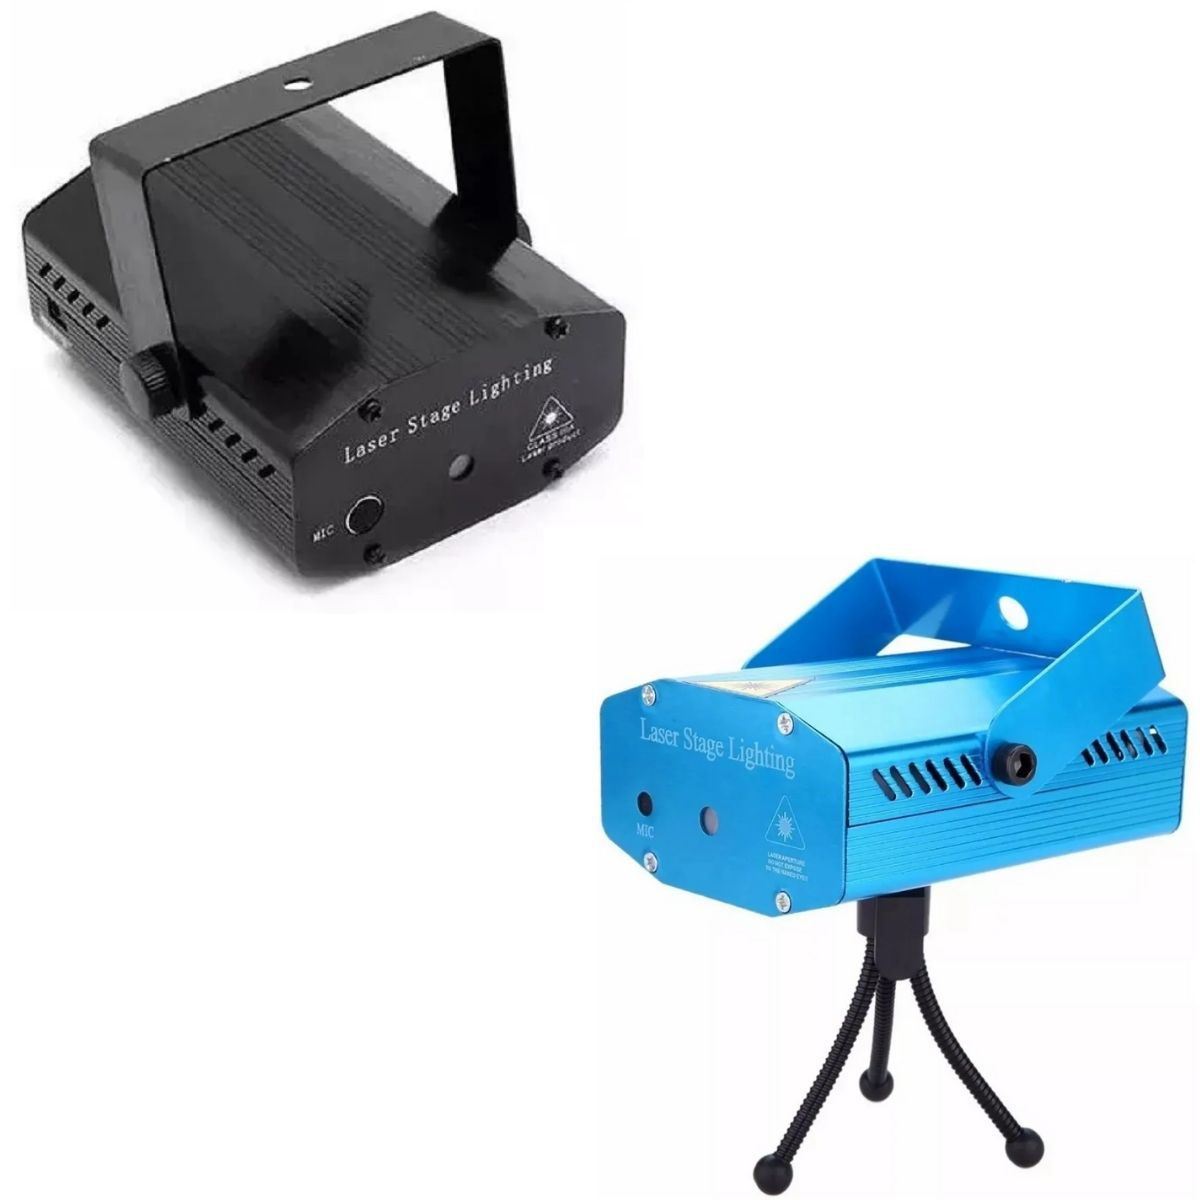 Mini Laser Projetor Holográfico Stage Lighting Preto E Azul - SD-126